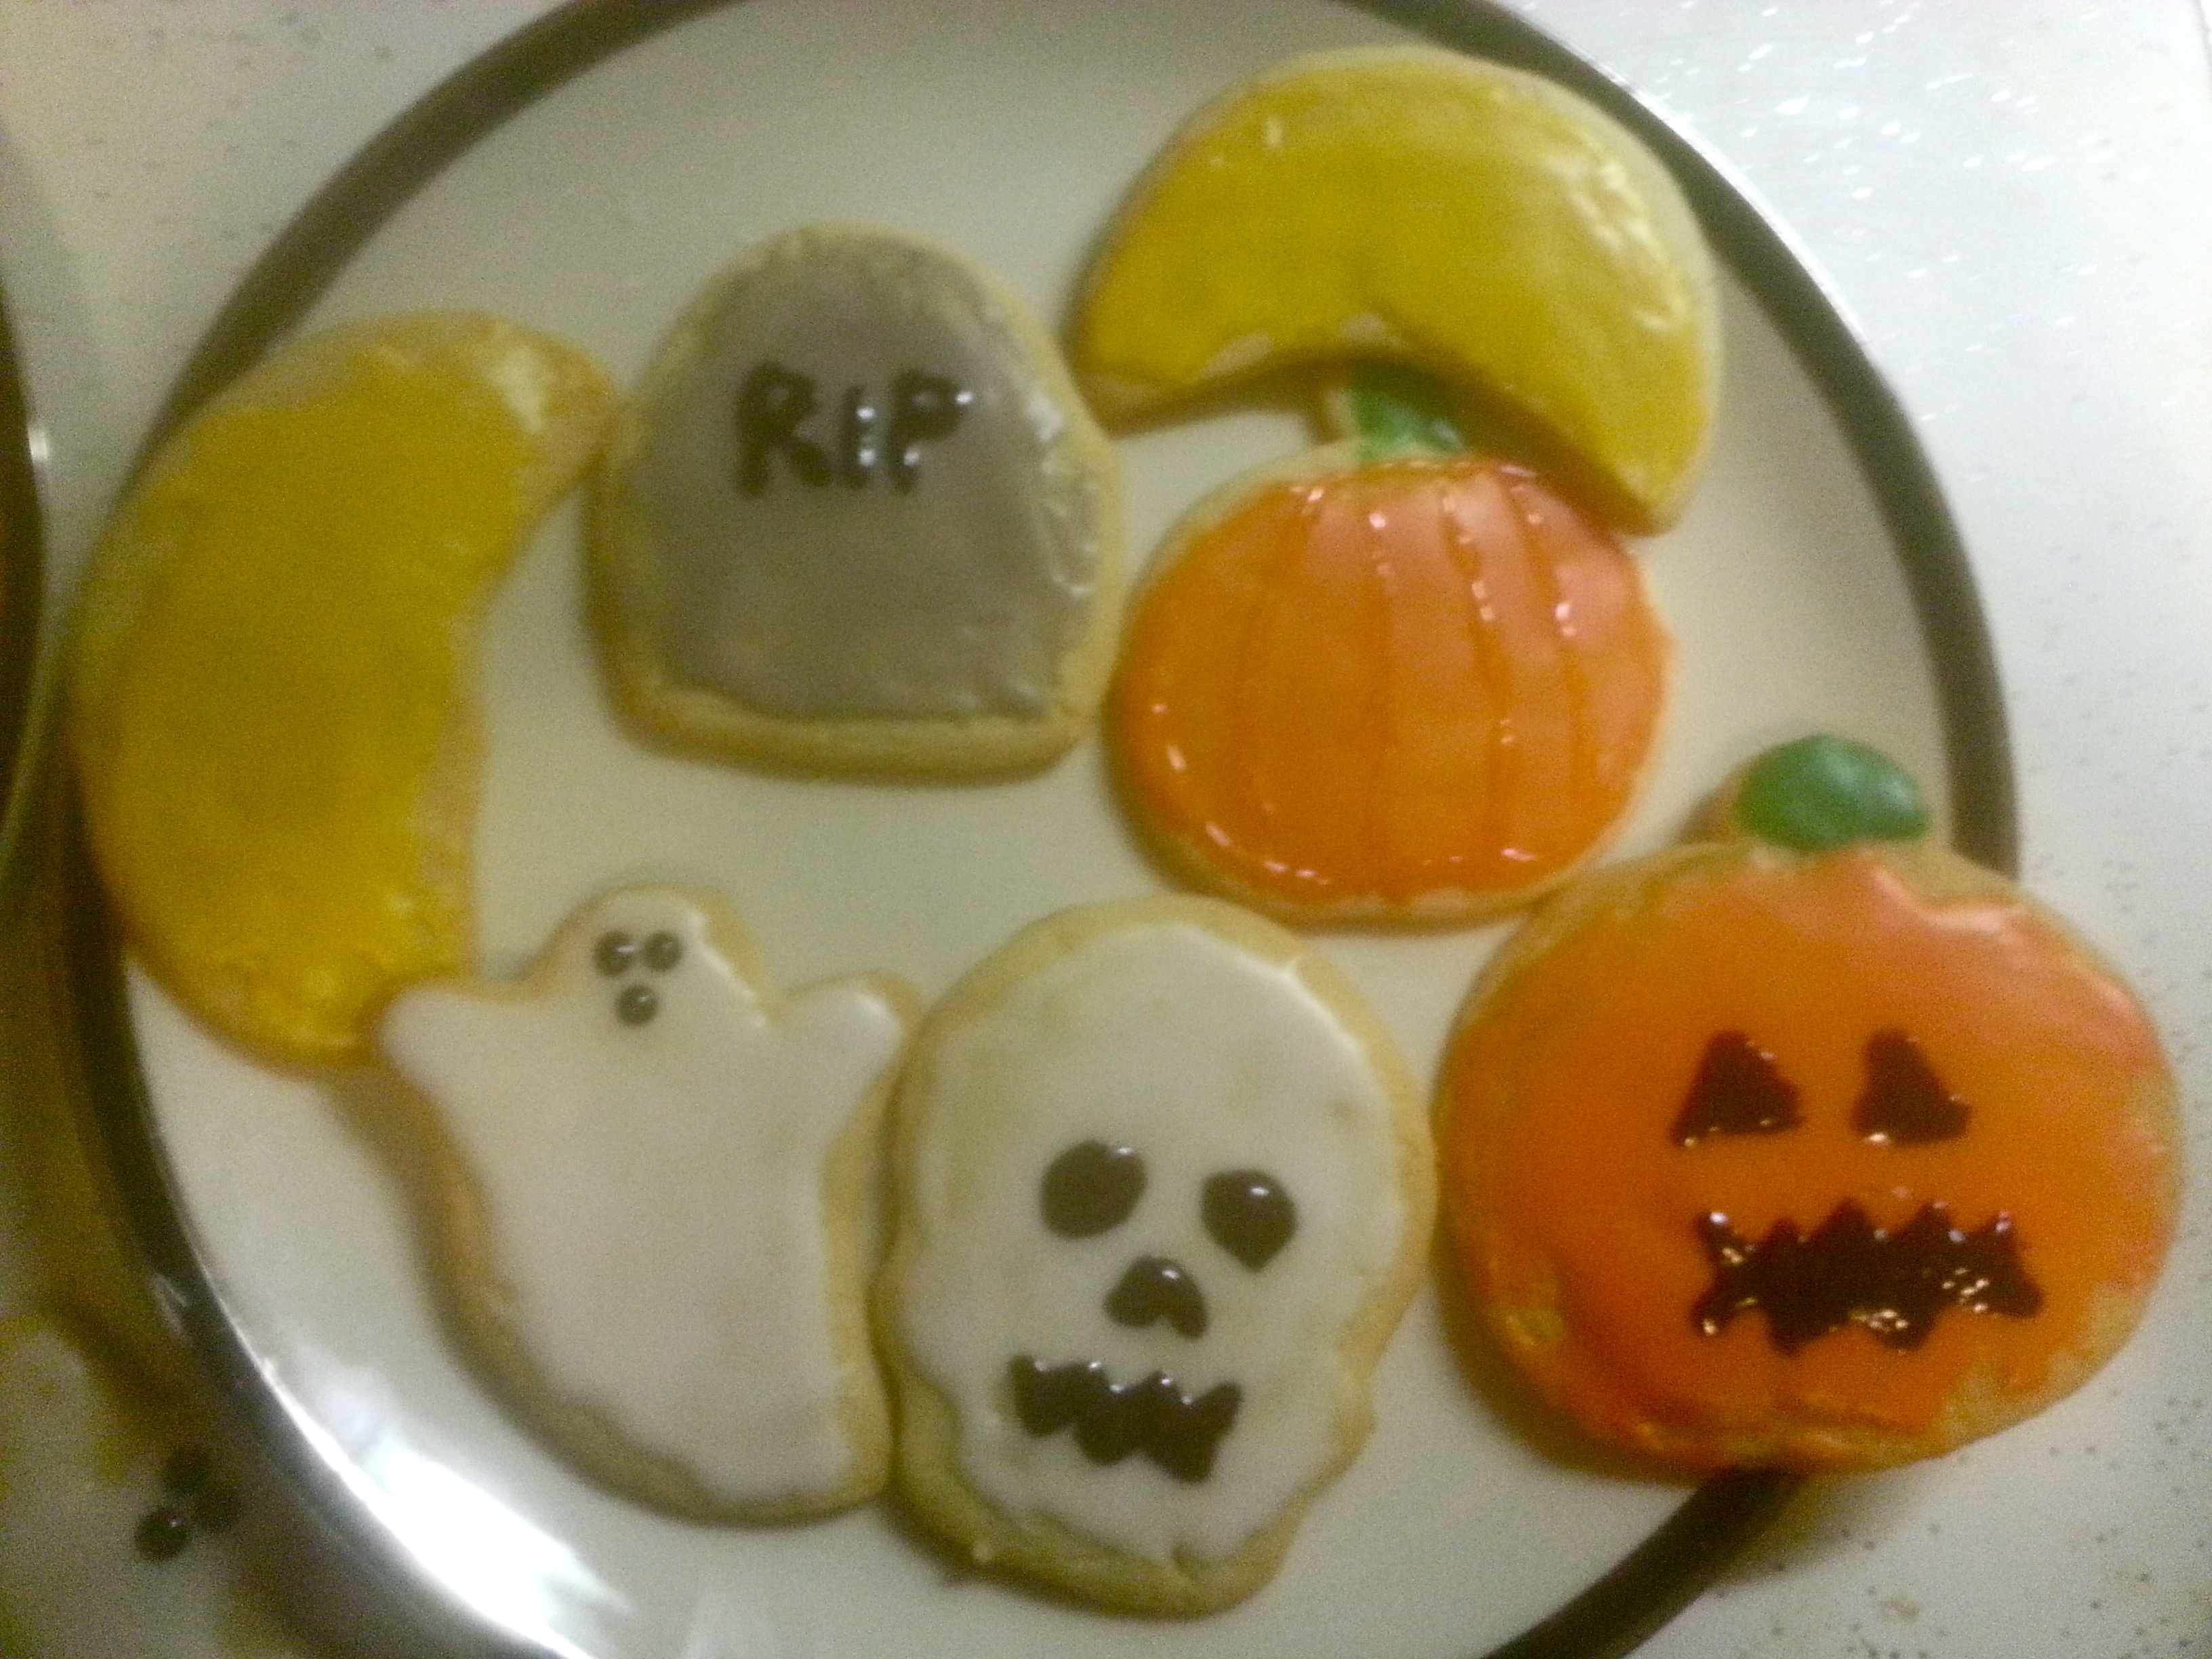 pillsbury ghost shape sugar cookies the process for baking can be